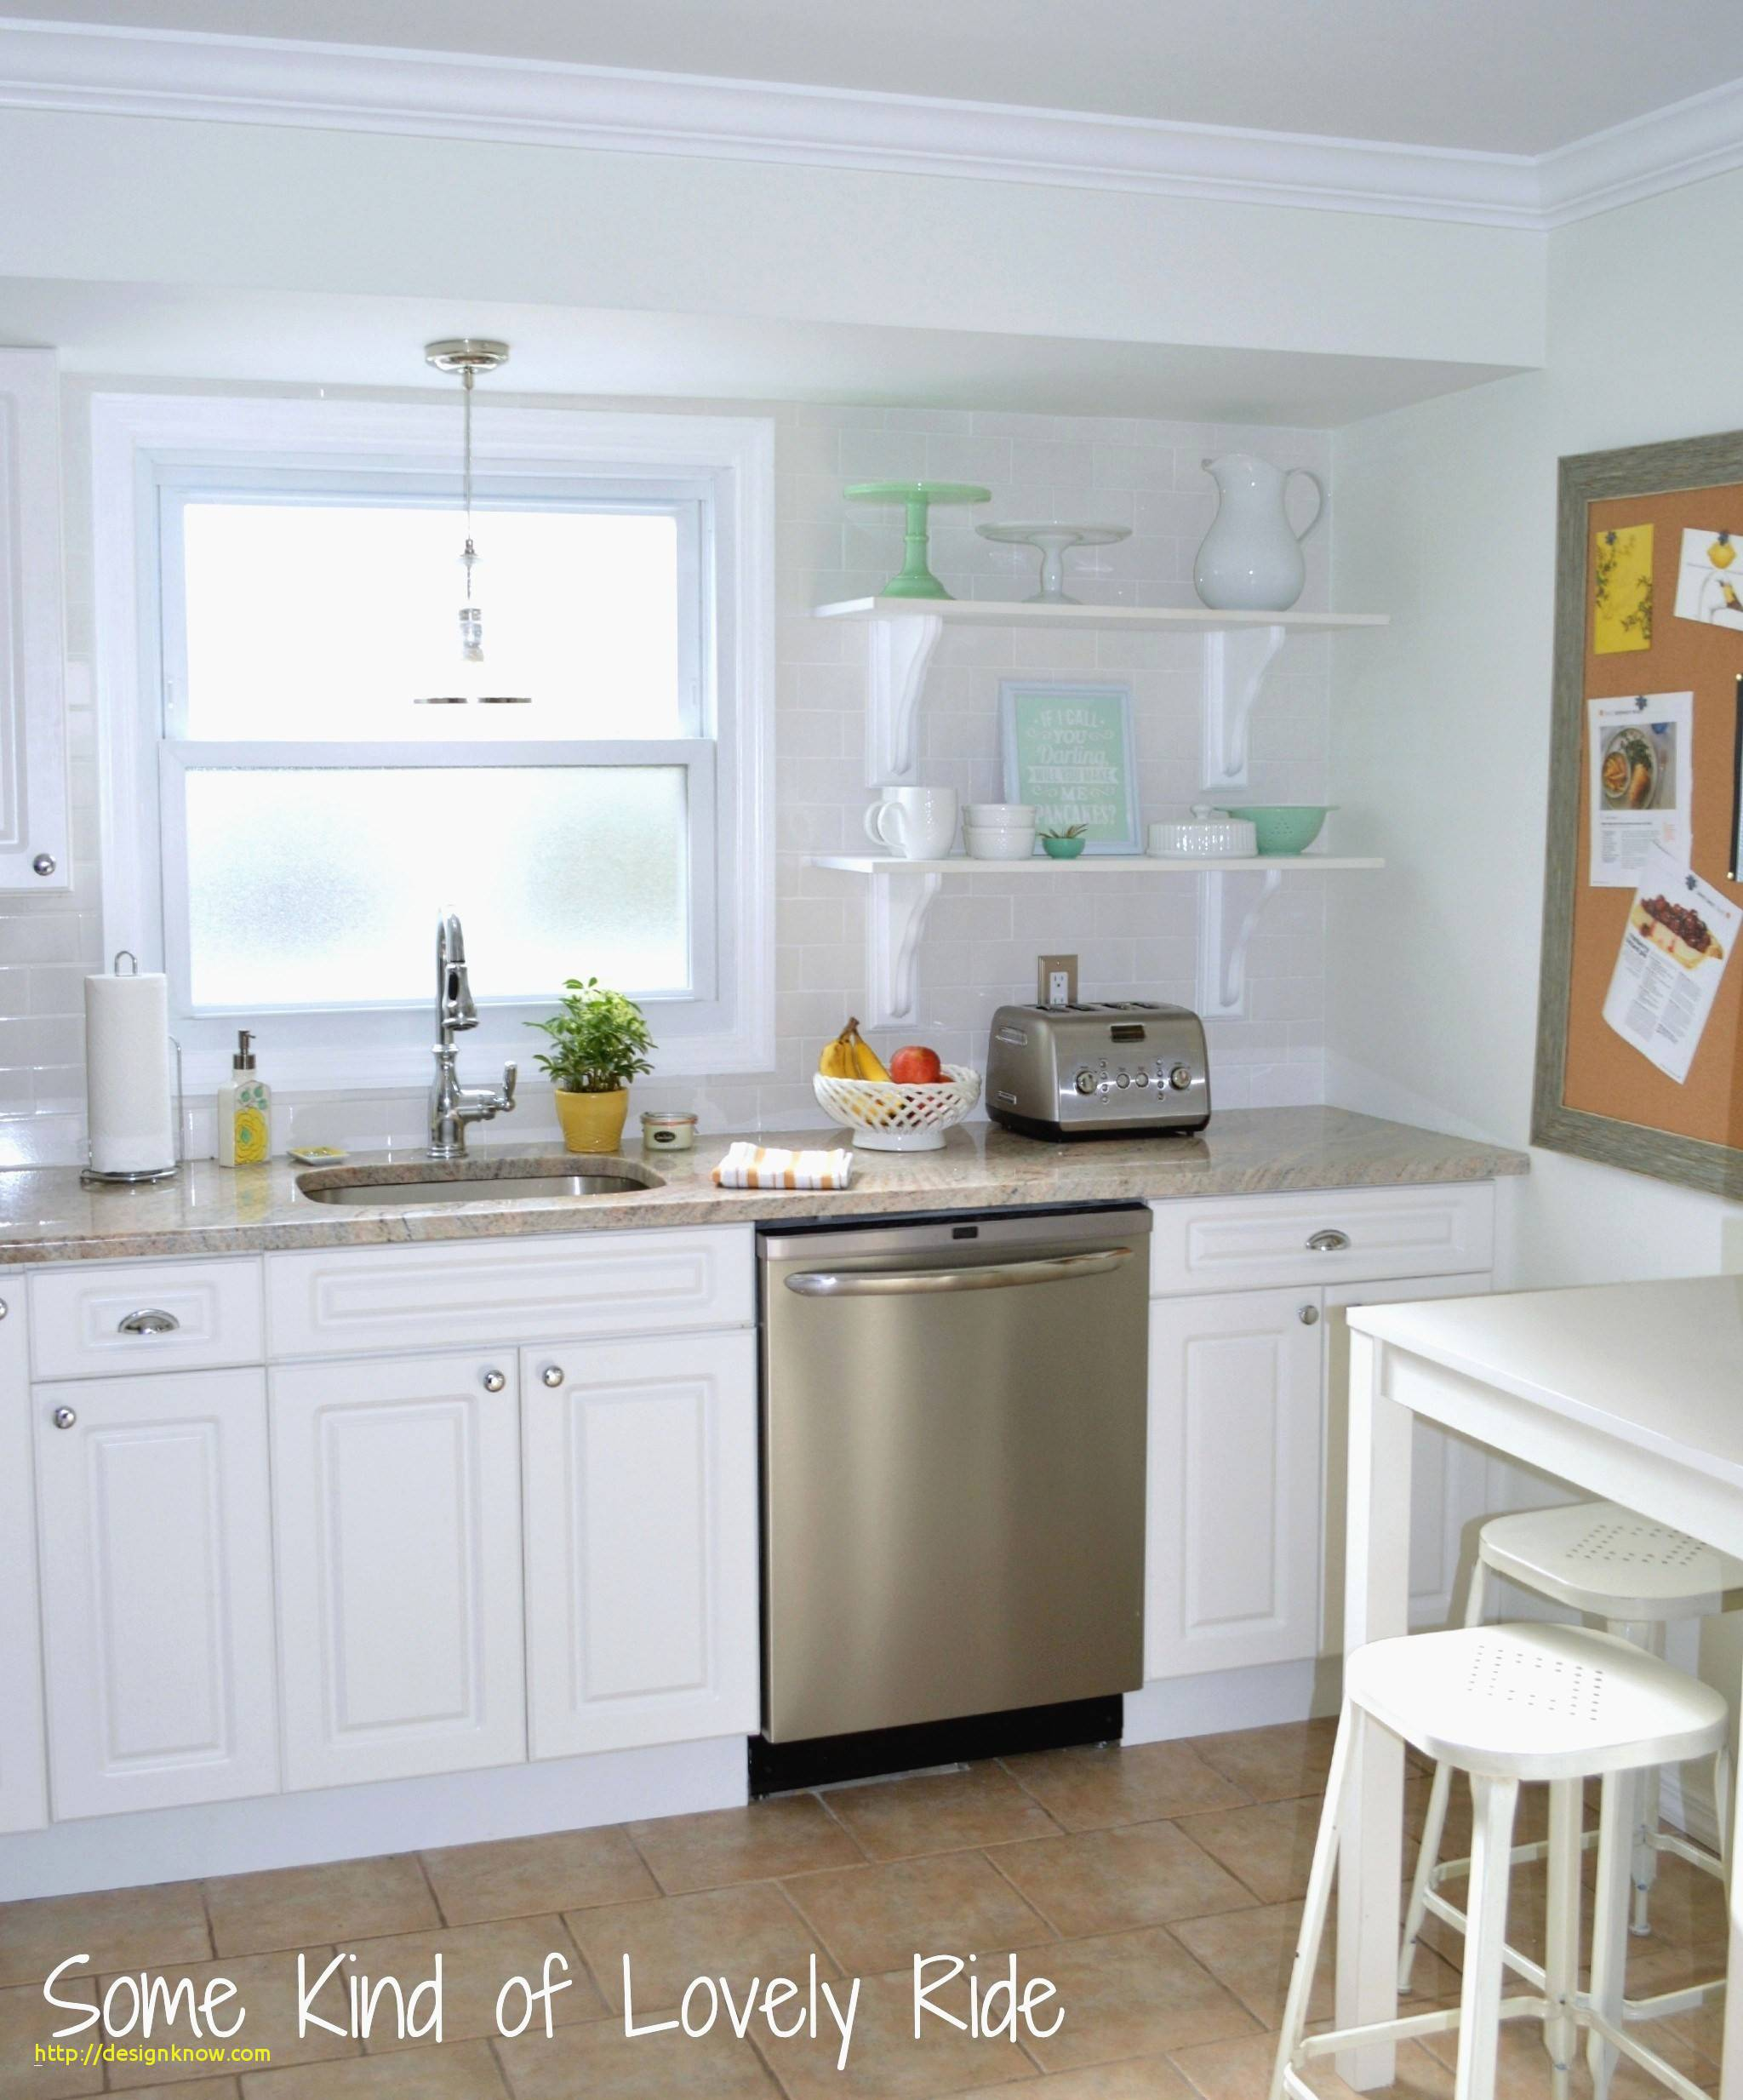 storage ideas for small kitchens inspirational awesome small space storage ideas home design and interior design of storage ideas for small kitchens